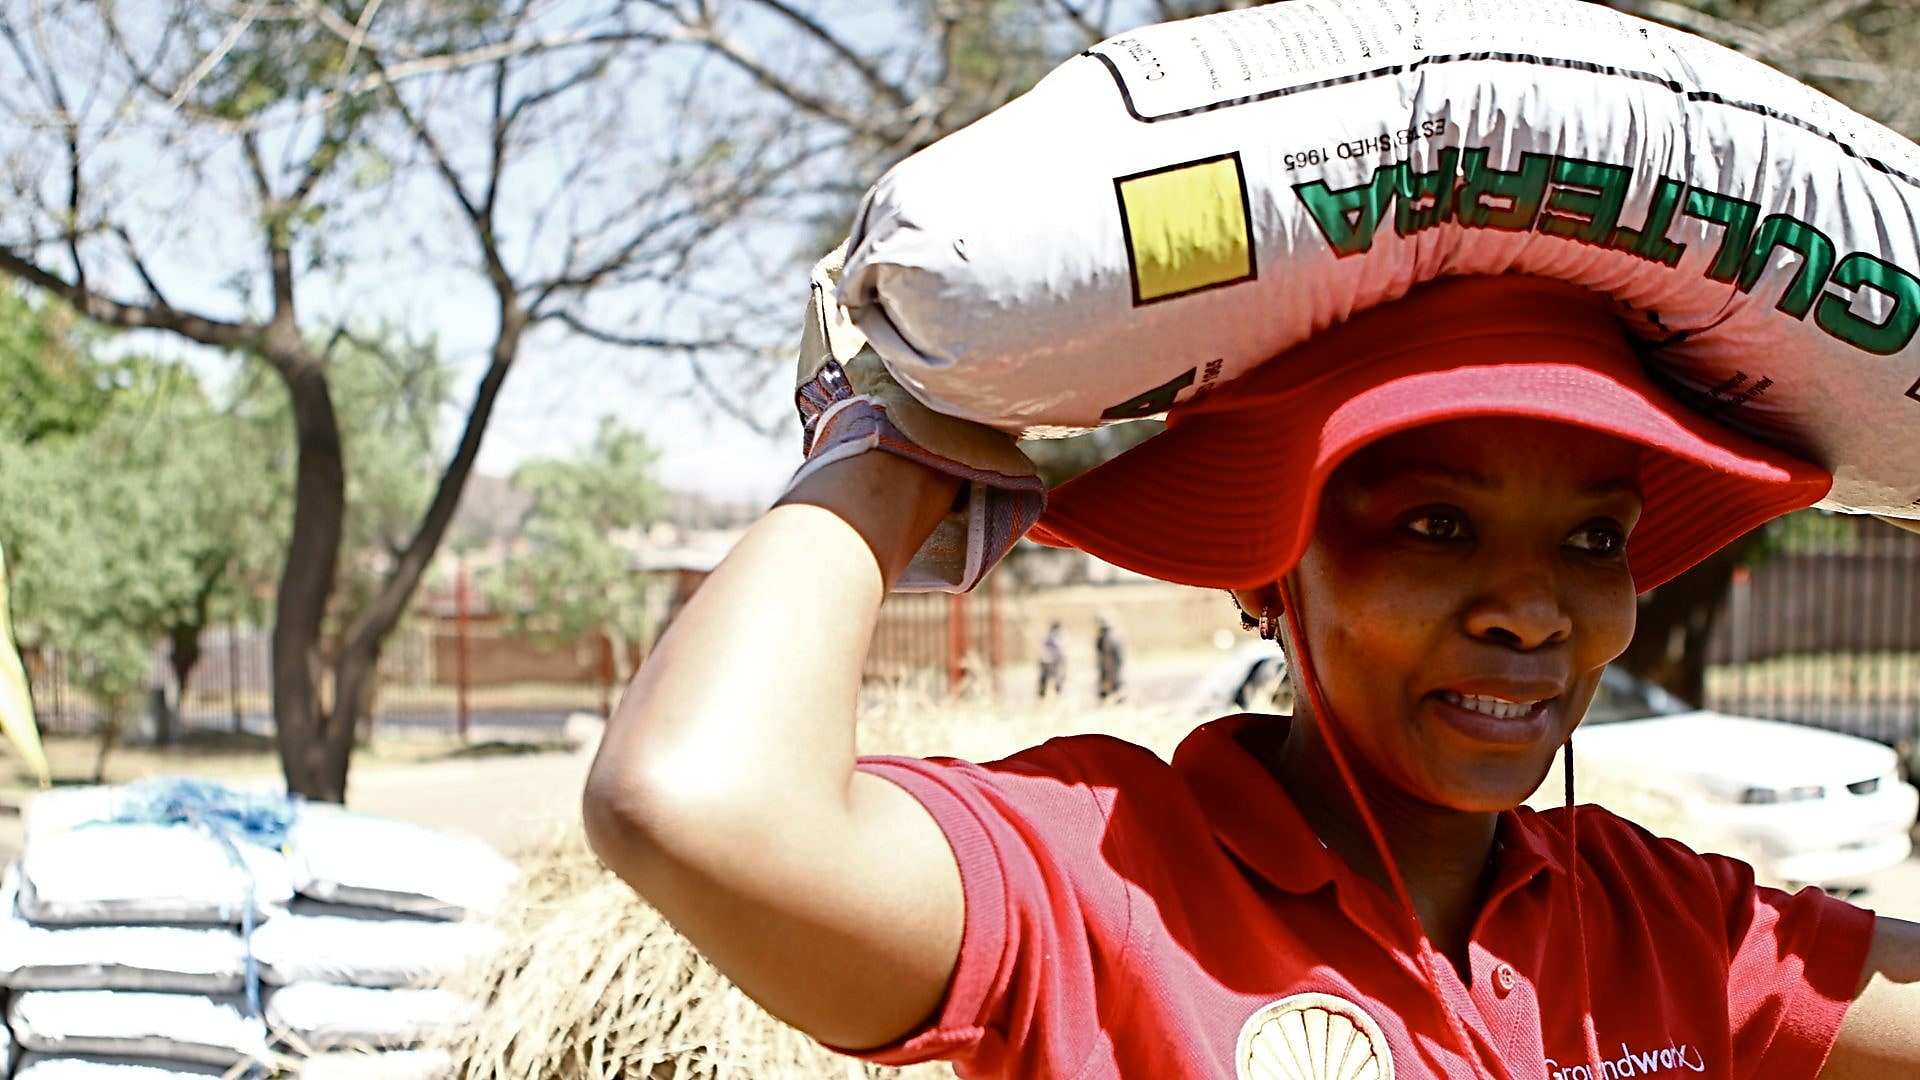 Groundworx Volunteer carrying sack on her head